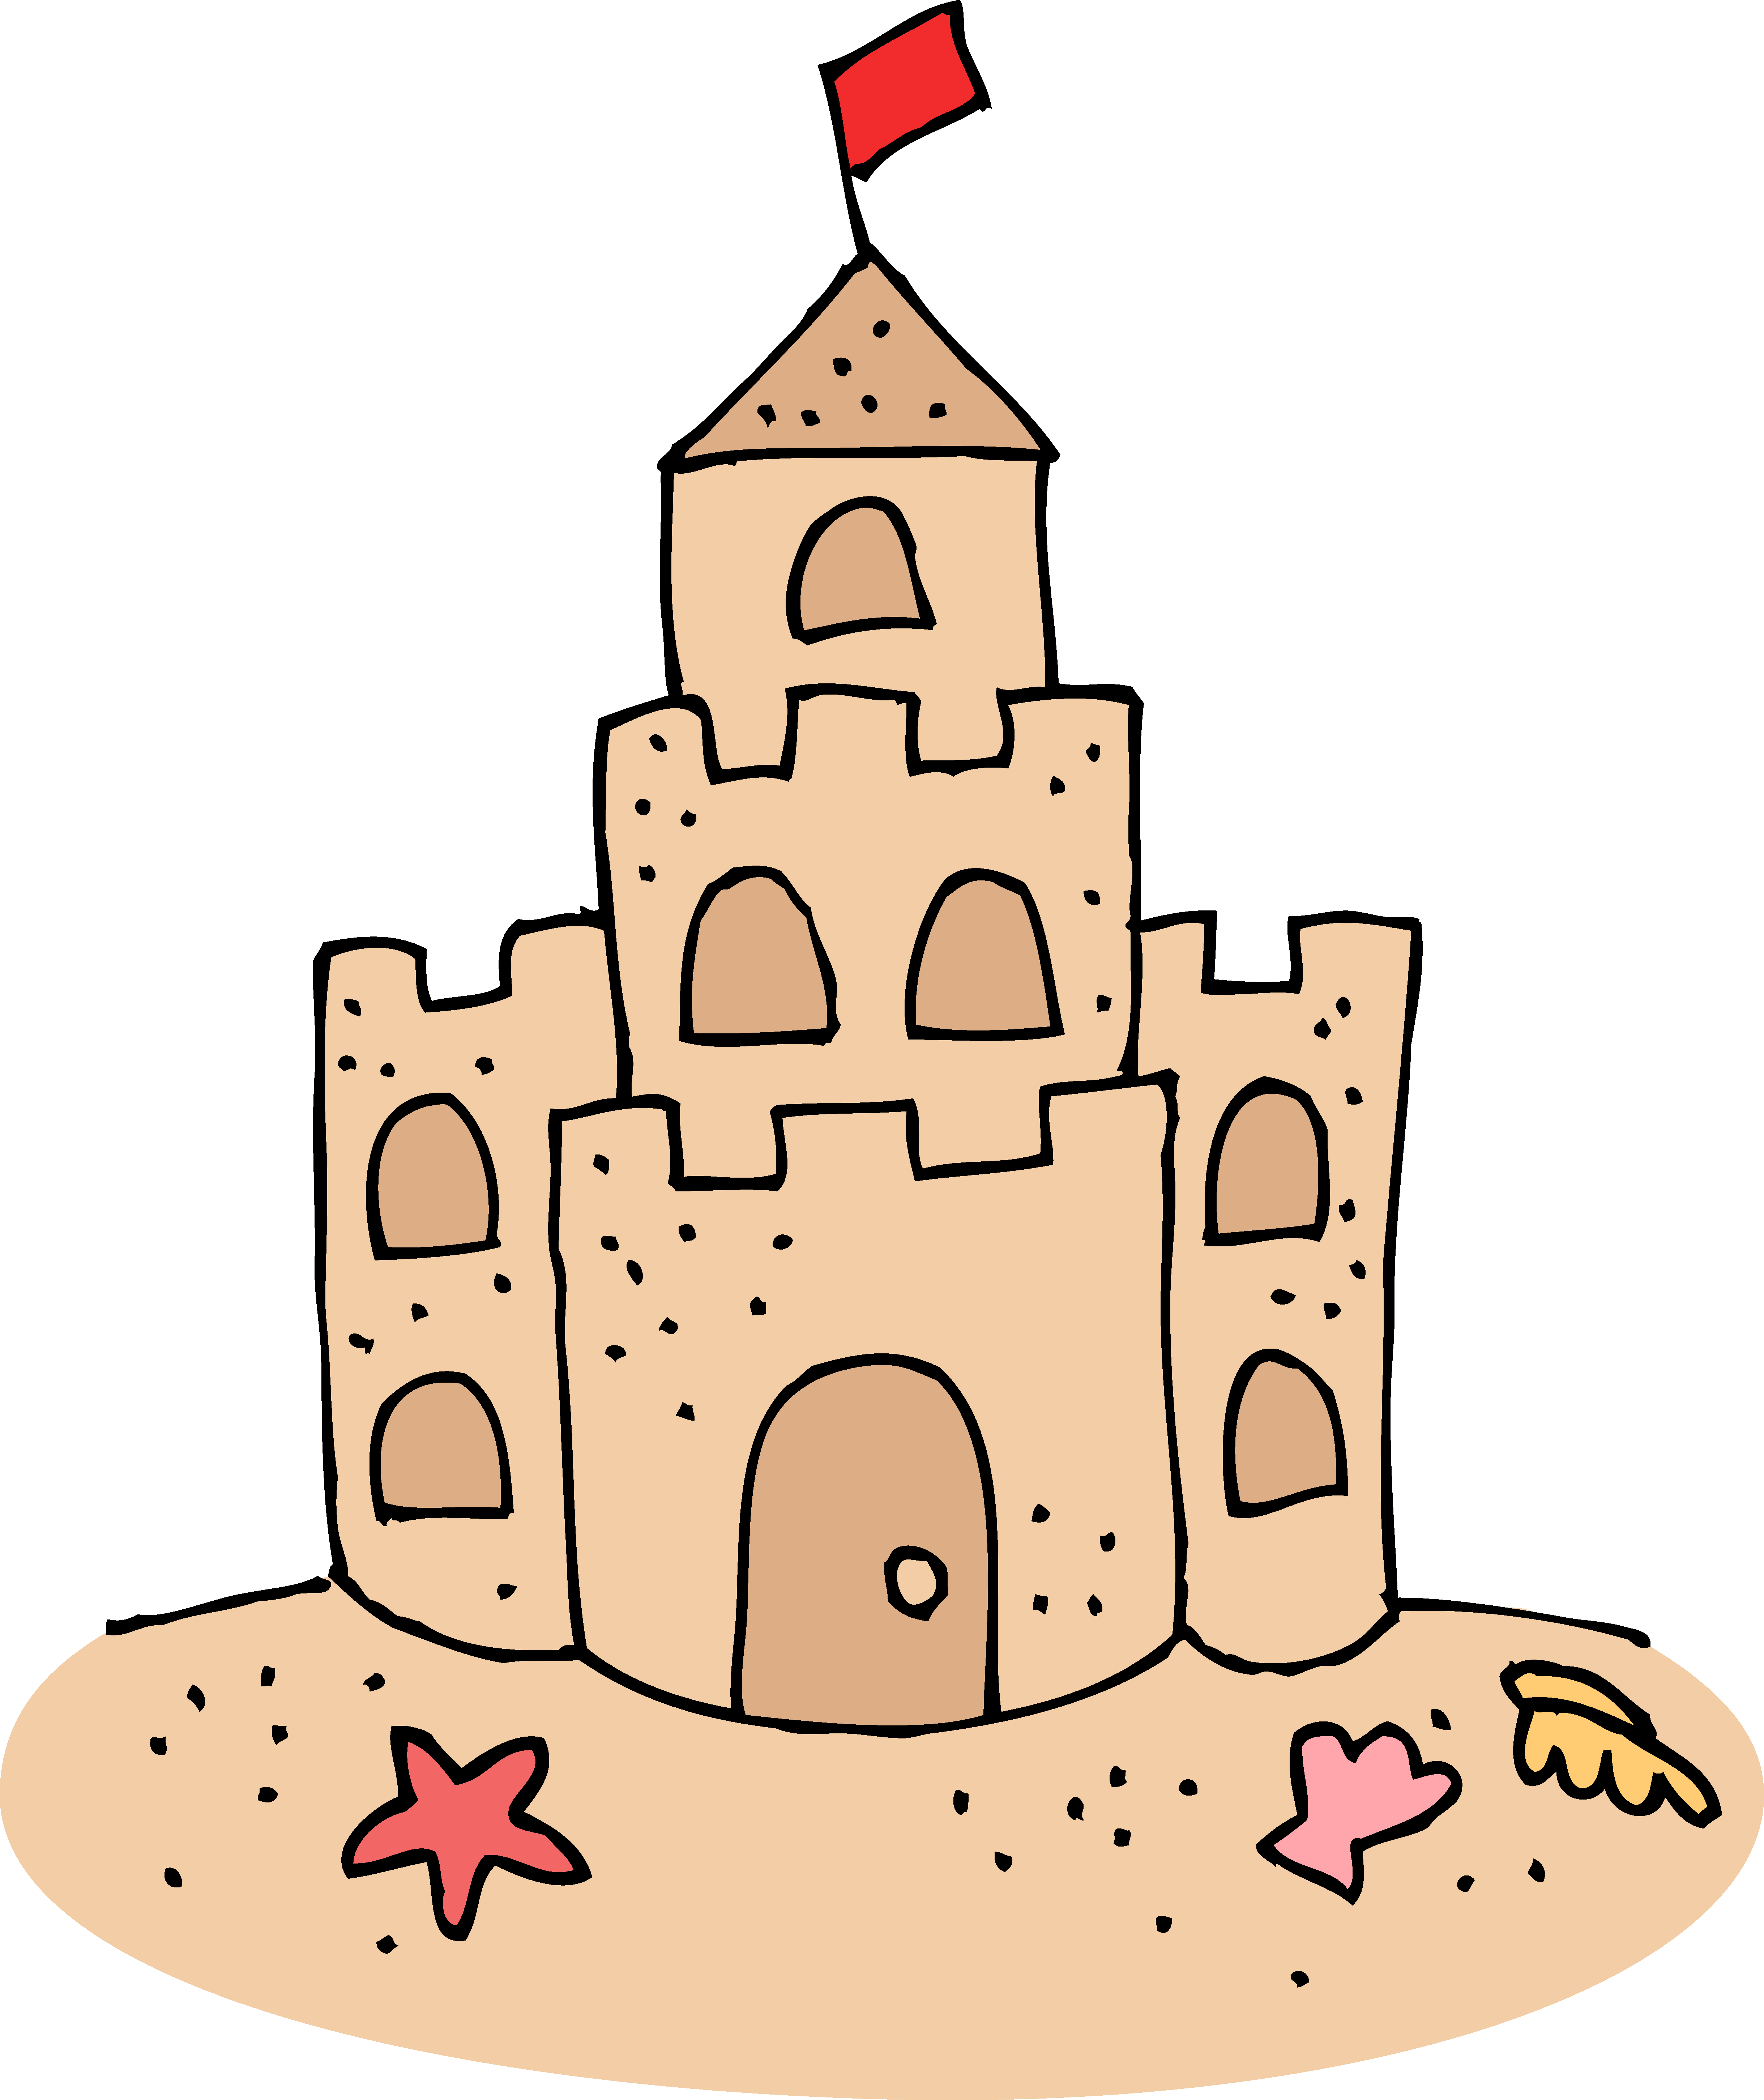 banner transparent Sandcastle clipart. Sand castle .